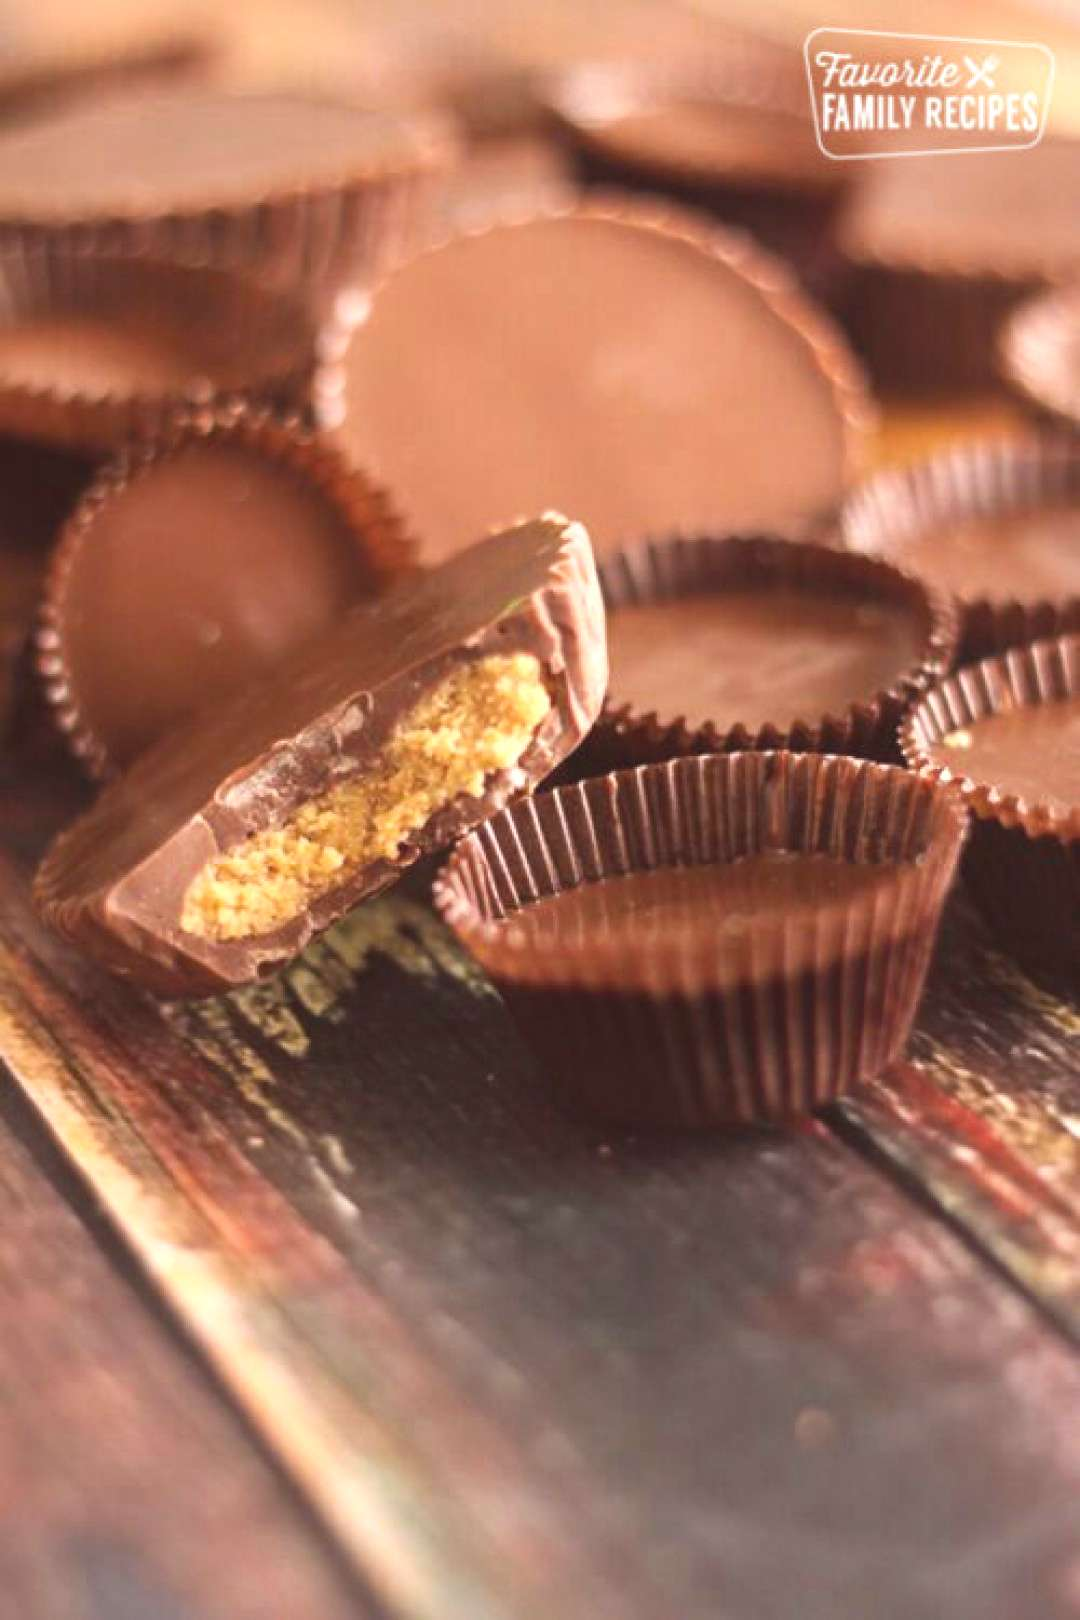 Homemade Reese's Peanut Butter Cups | Favorite Family Recipes